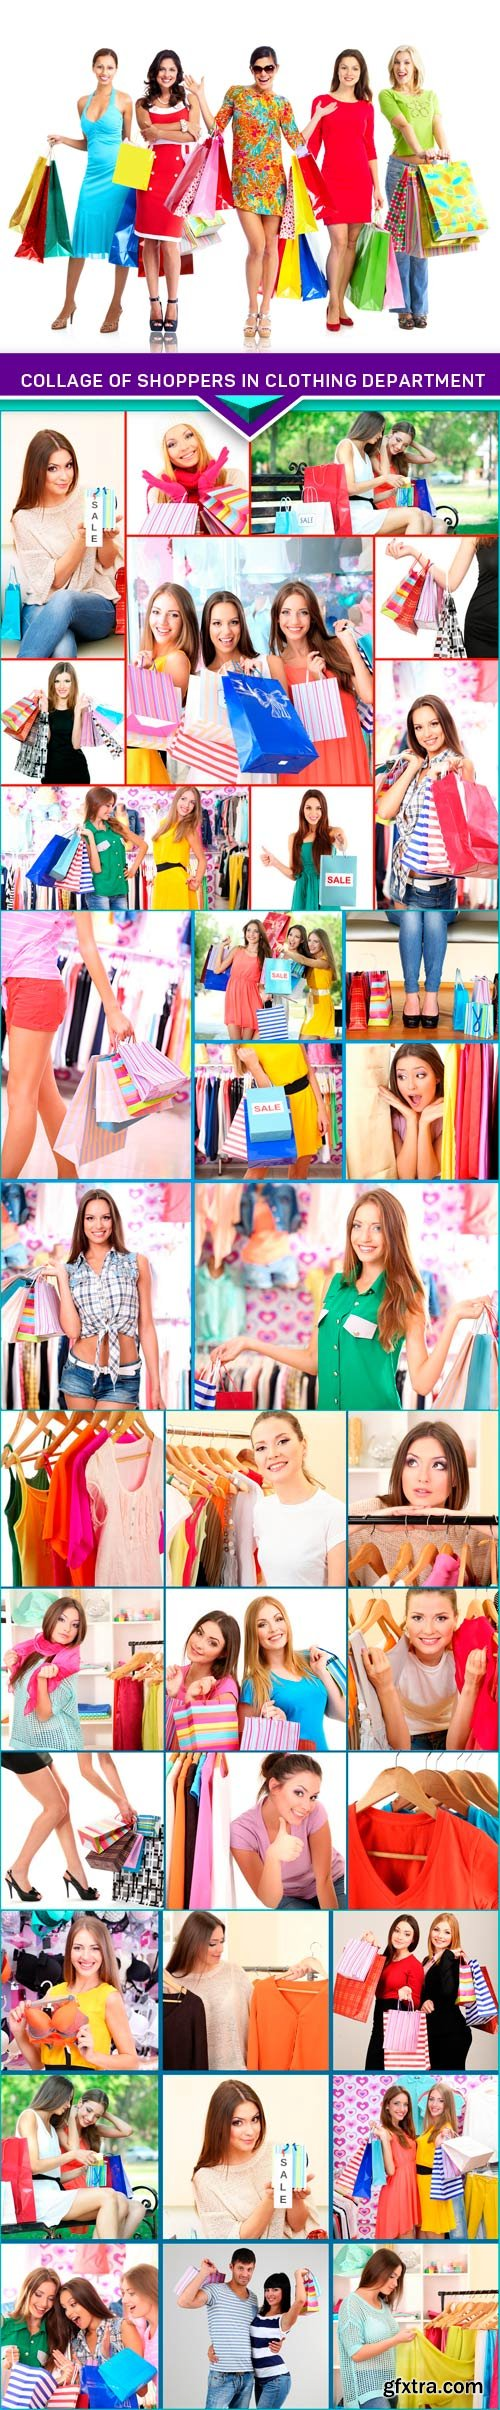 Collage of shoppers in clothing department 5x JPEG